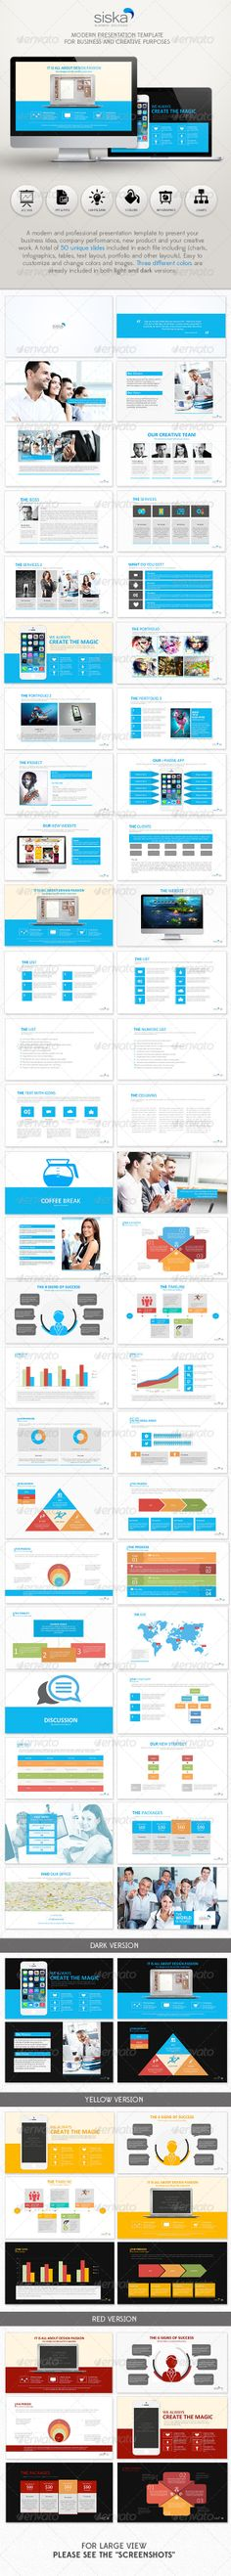 Siska Powerpoint Presentation Template (Powerpoint Templates) #Powerpoint #Powerpoint_Template #Presentation